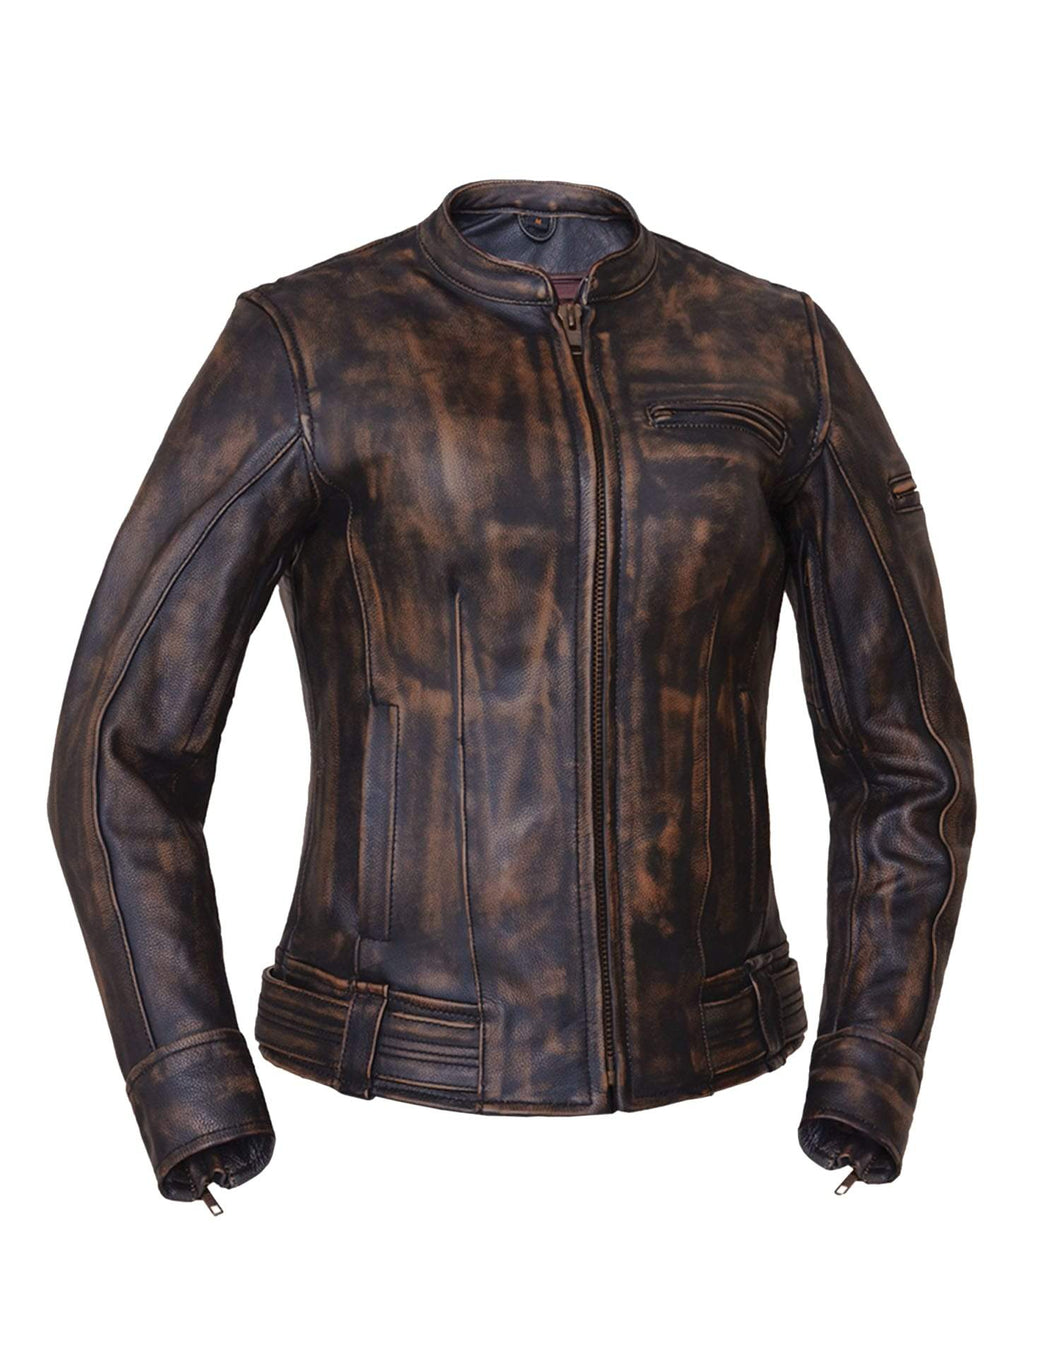 UNIK Ladies Nevada Brown Ultra Leather Motorcycle Jacket - Ghost Rider Leather